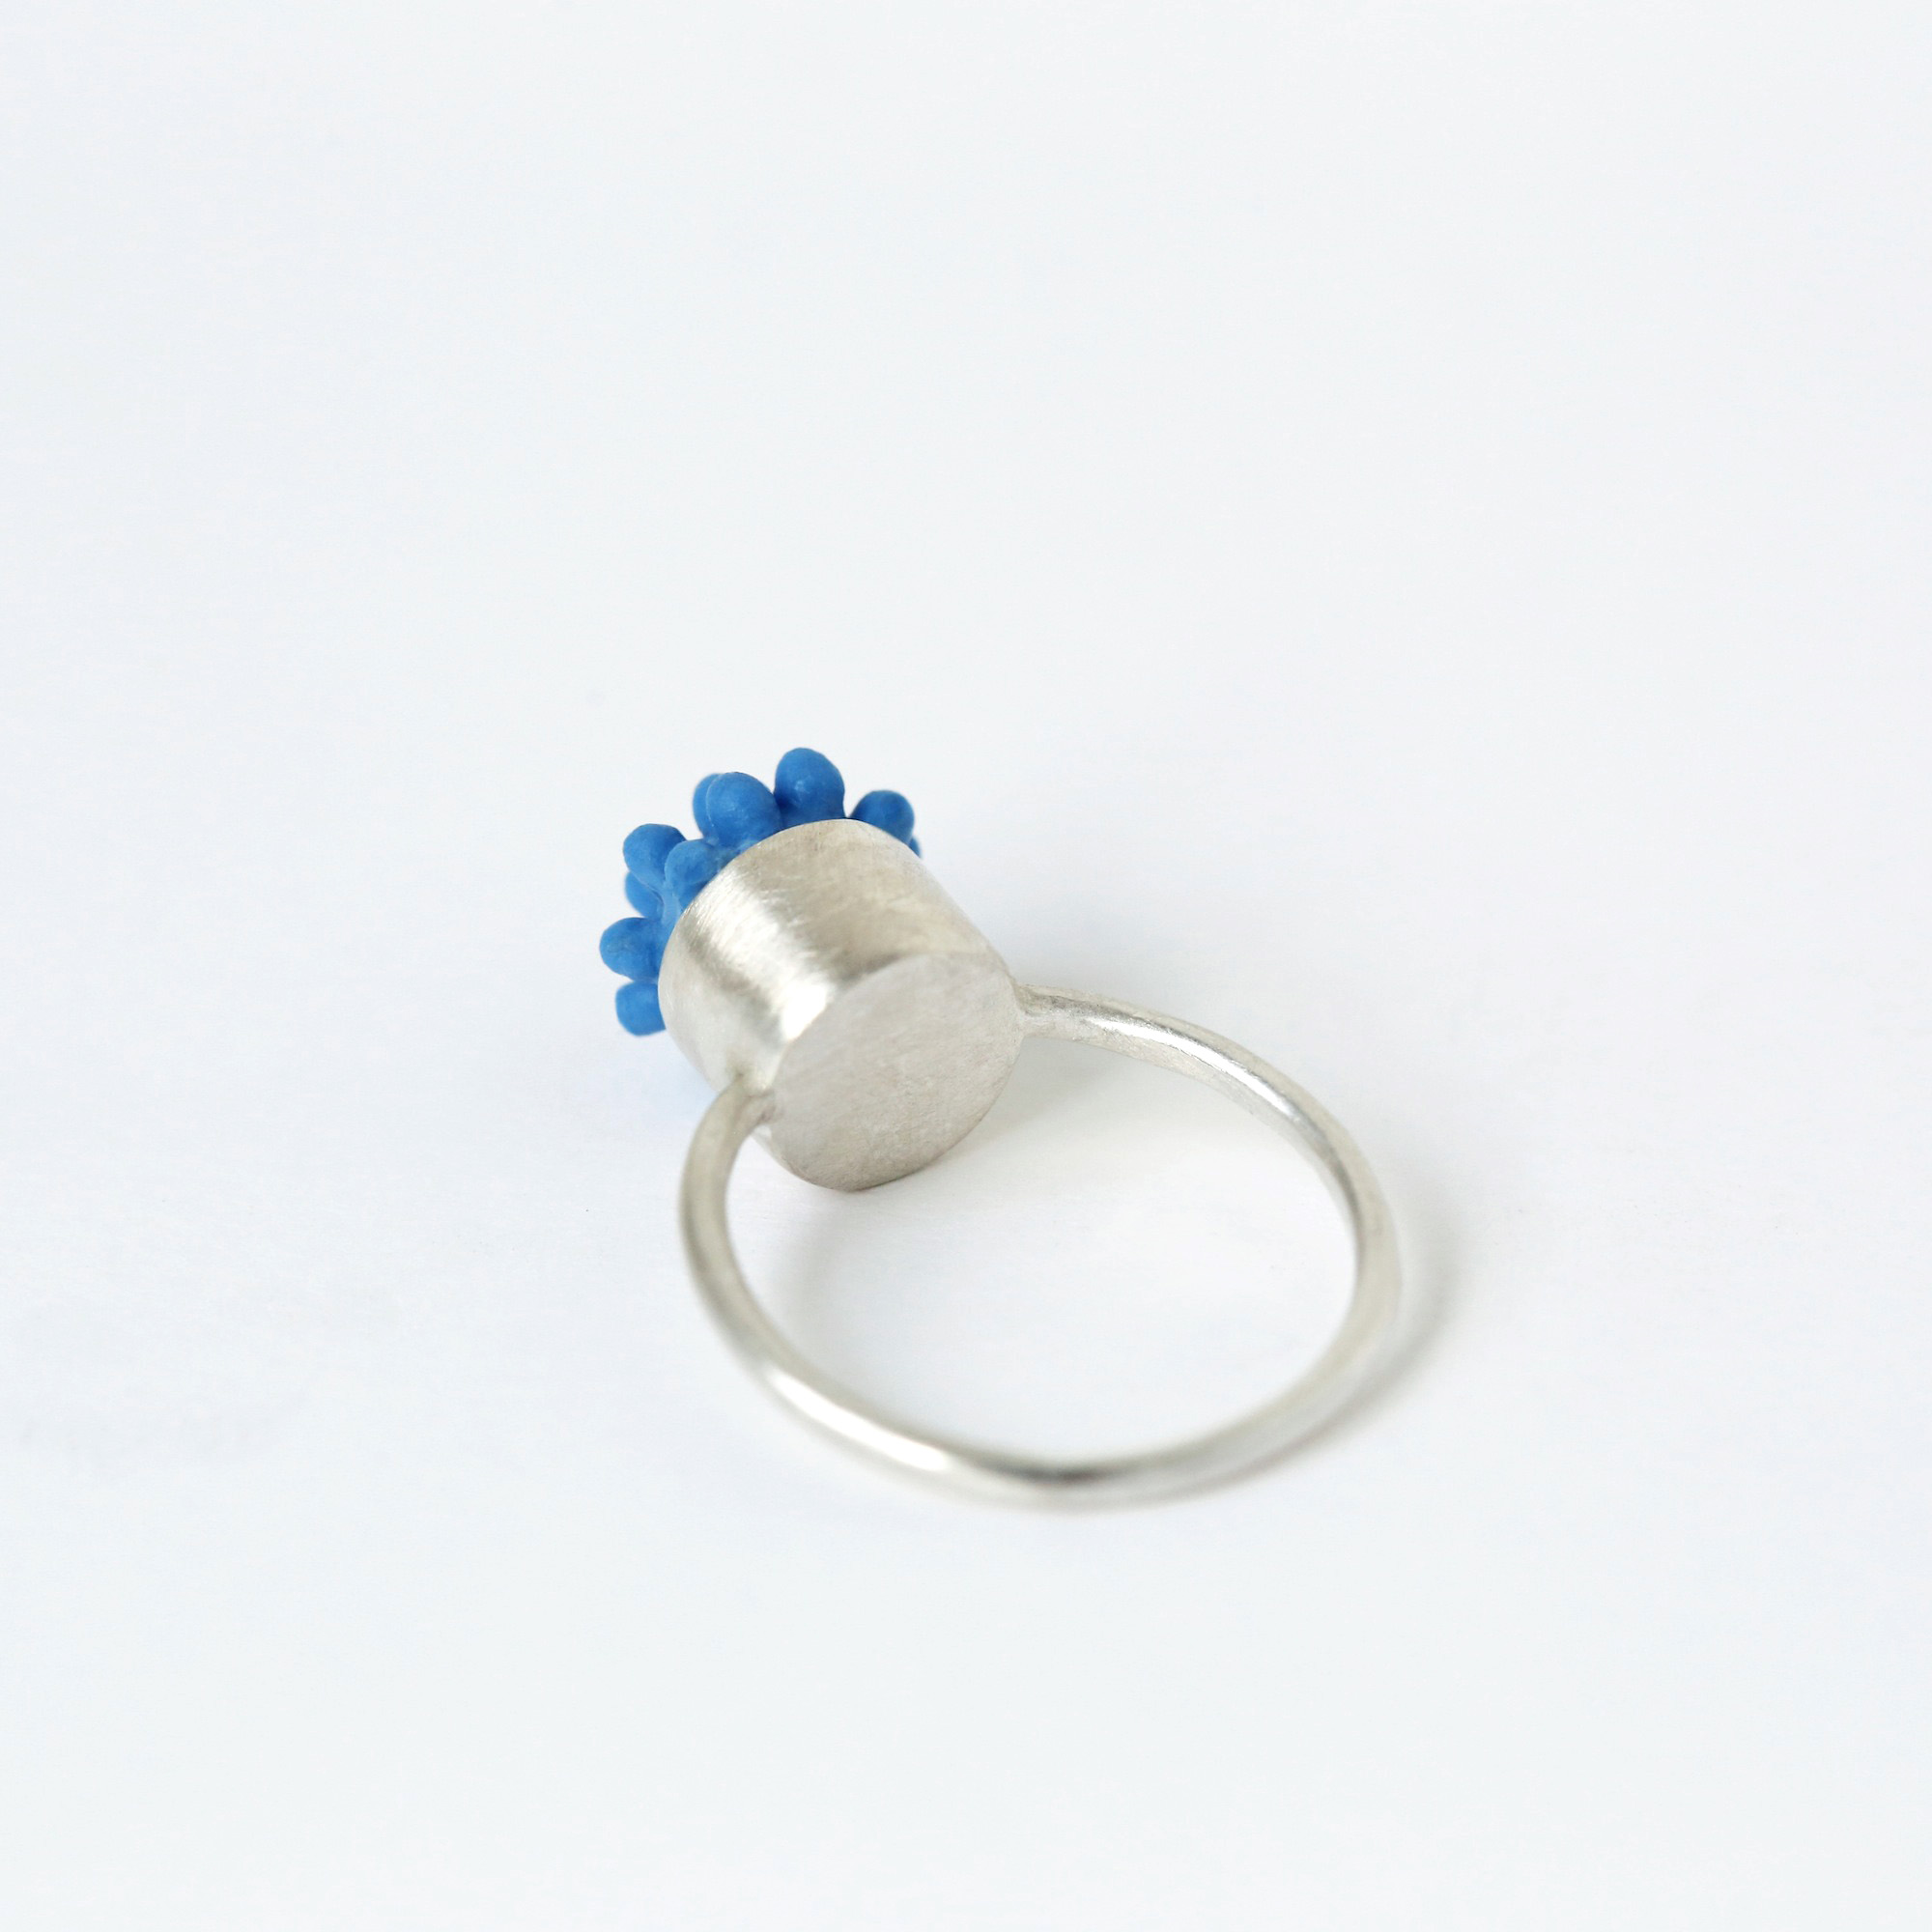 dovile b. nautilus hard soft statement tiny blue ring